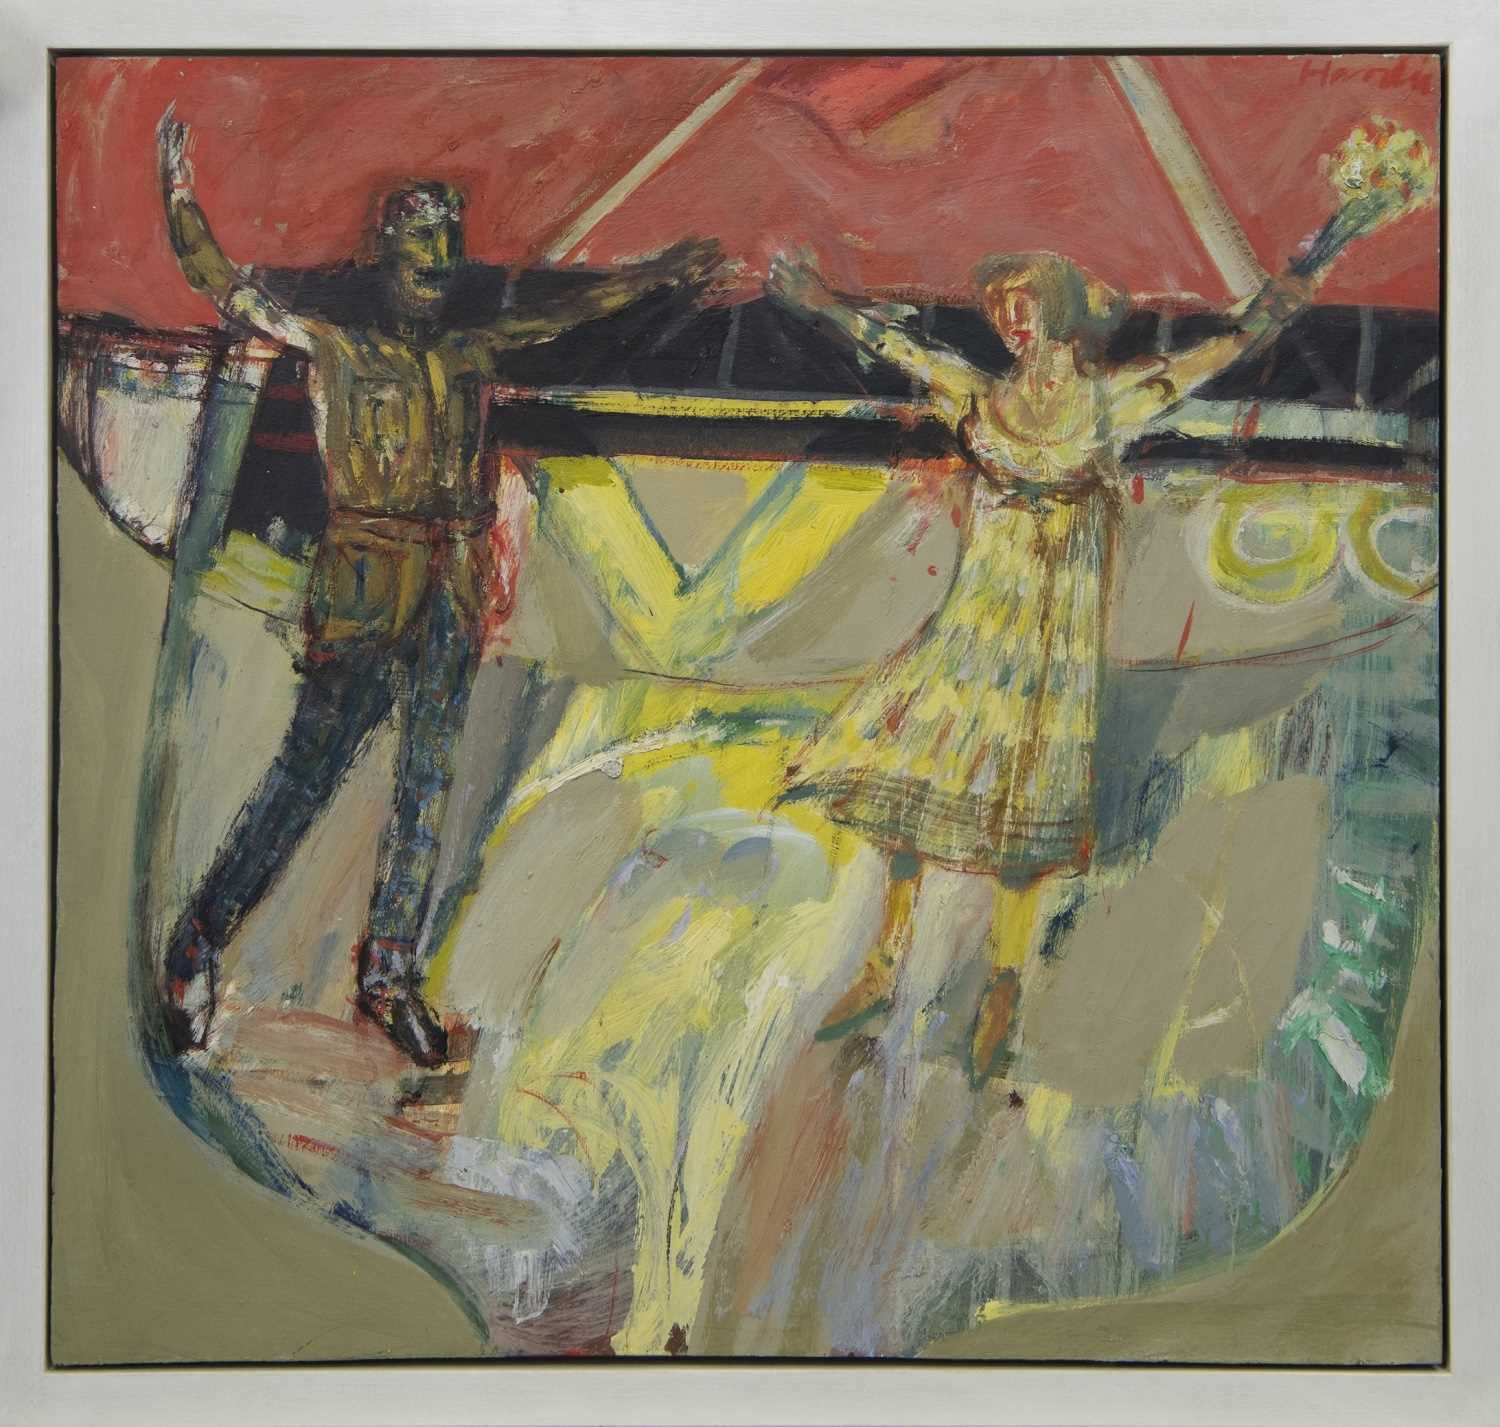 Lot 544 - ROTHESAY FERRY IV, THE COUPLE, AN OIL BY JAMES HARDIE